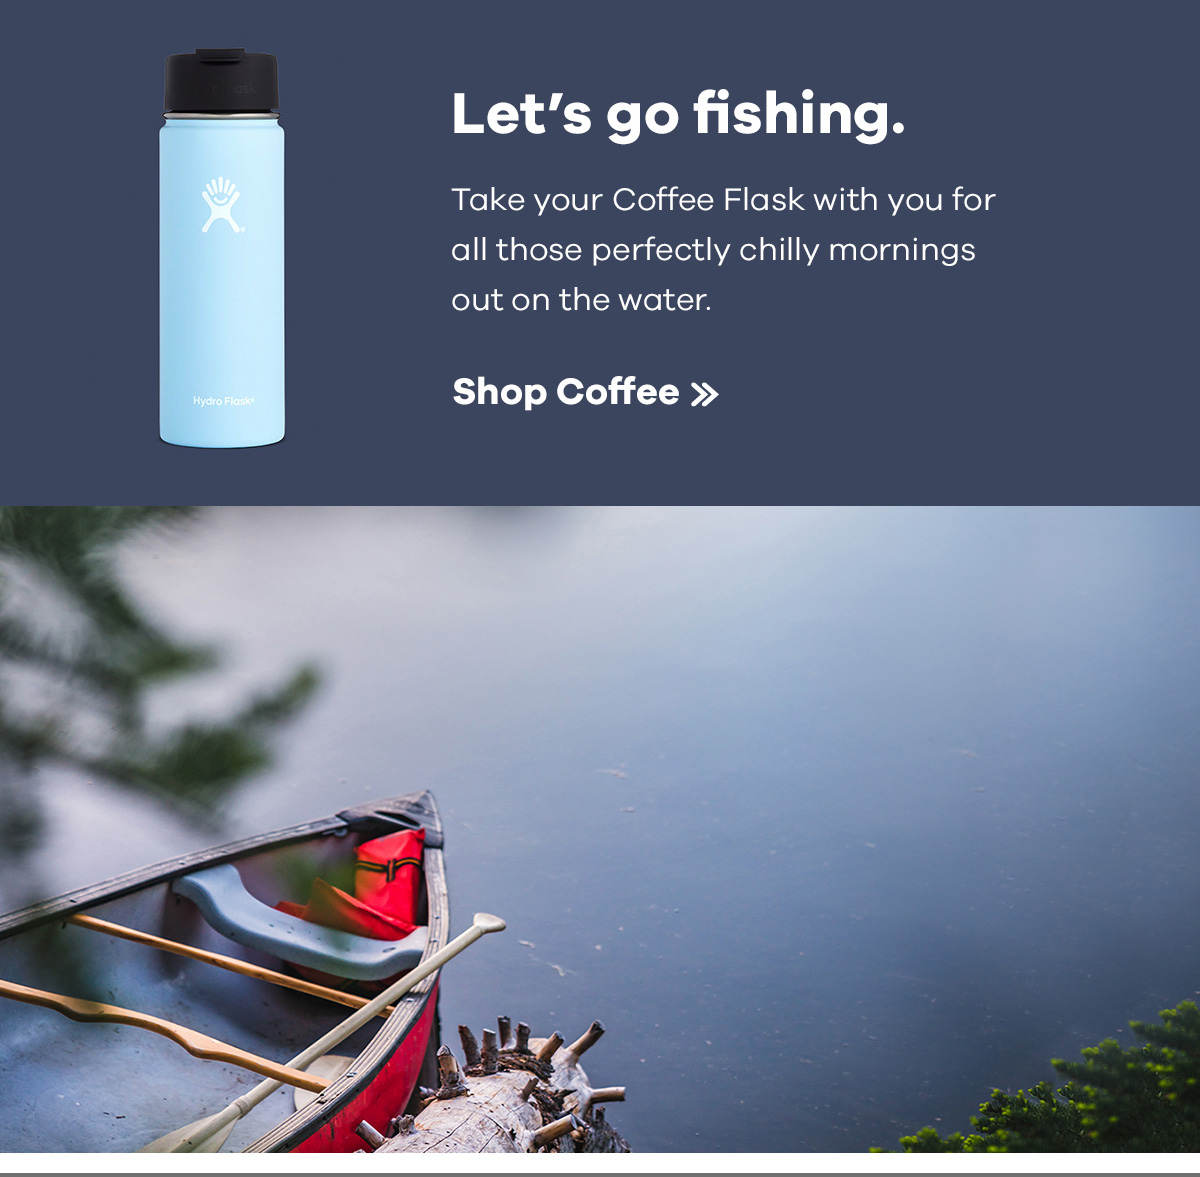 Let's go fishing. Take your Coffee Flask with you for all those perfectly chilly mornings out on the water. | Shop Coffee >>